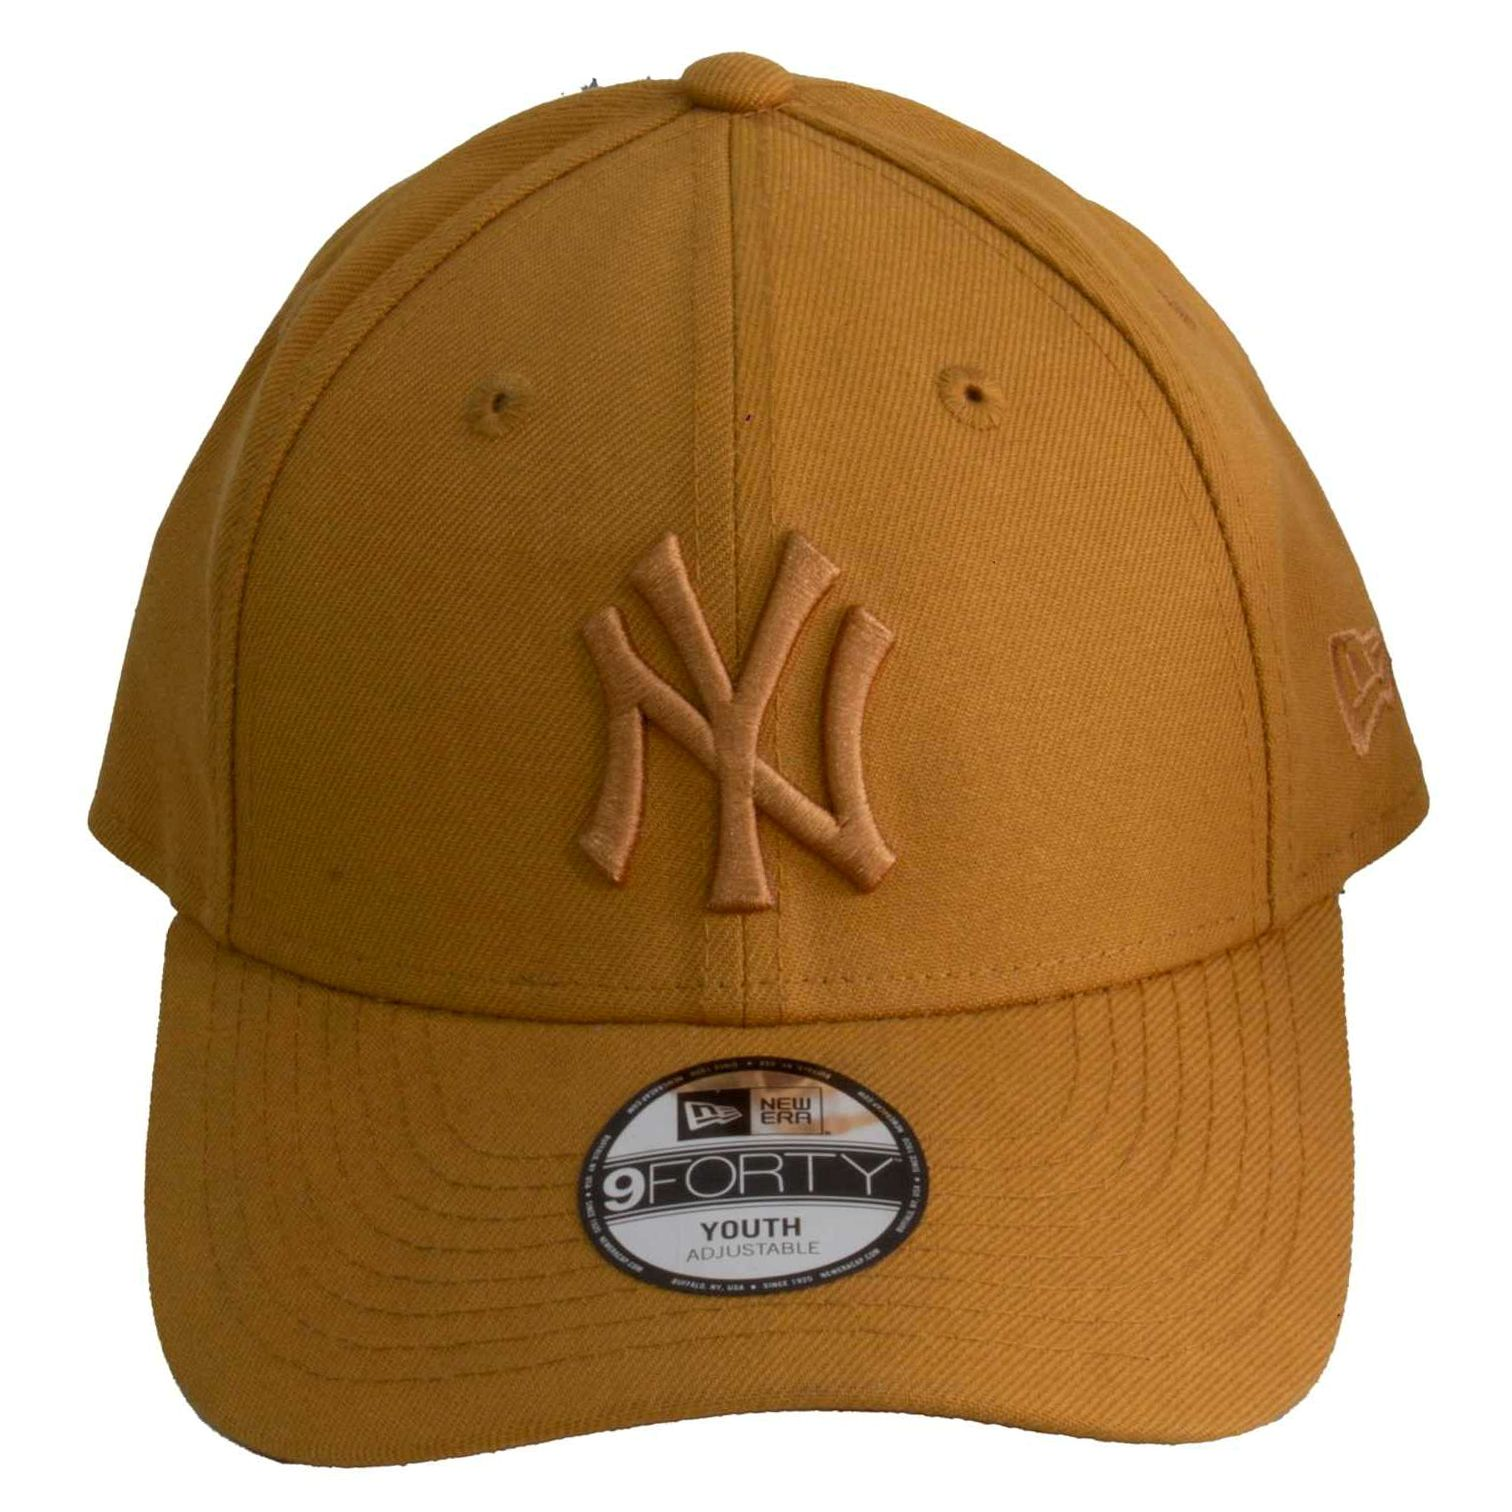 Boné Juvenil New Era Yankees Caramelo